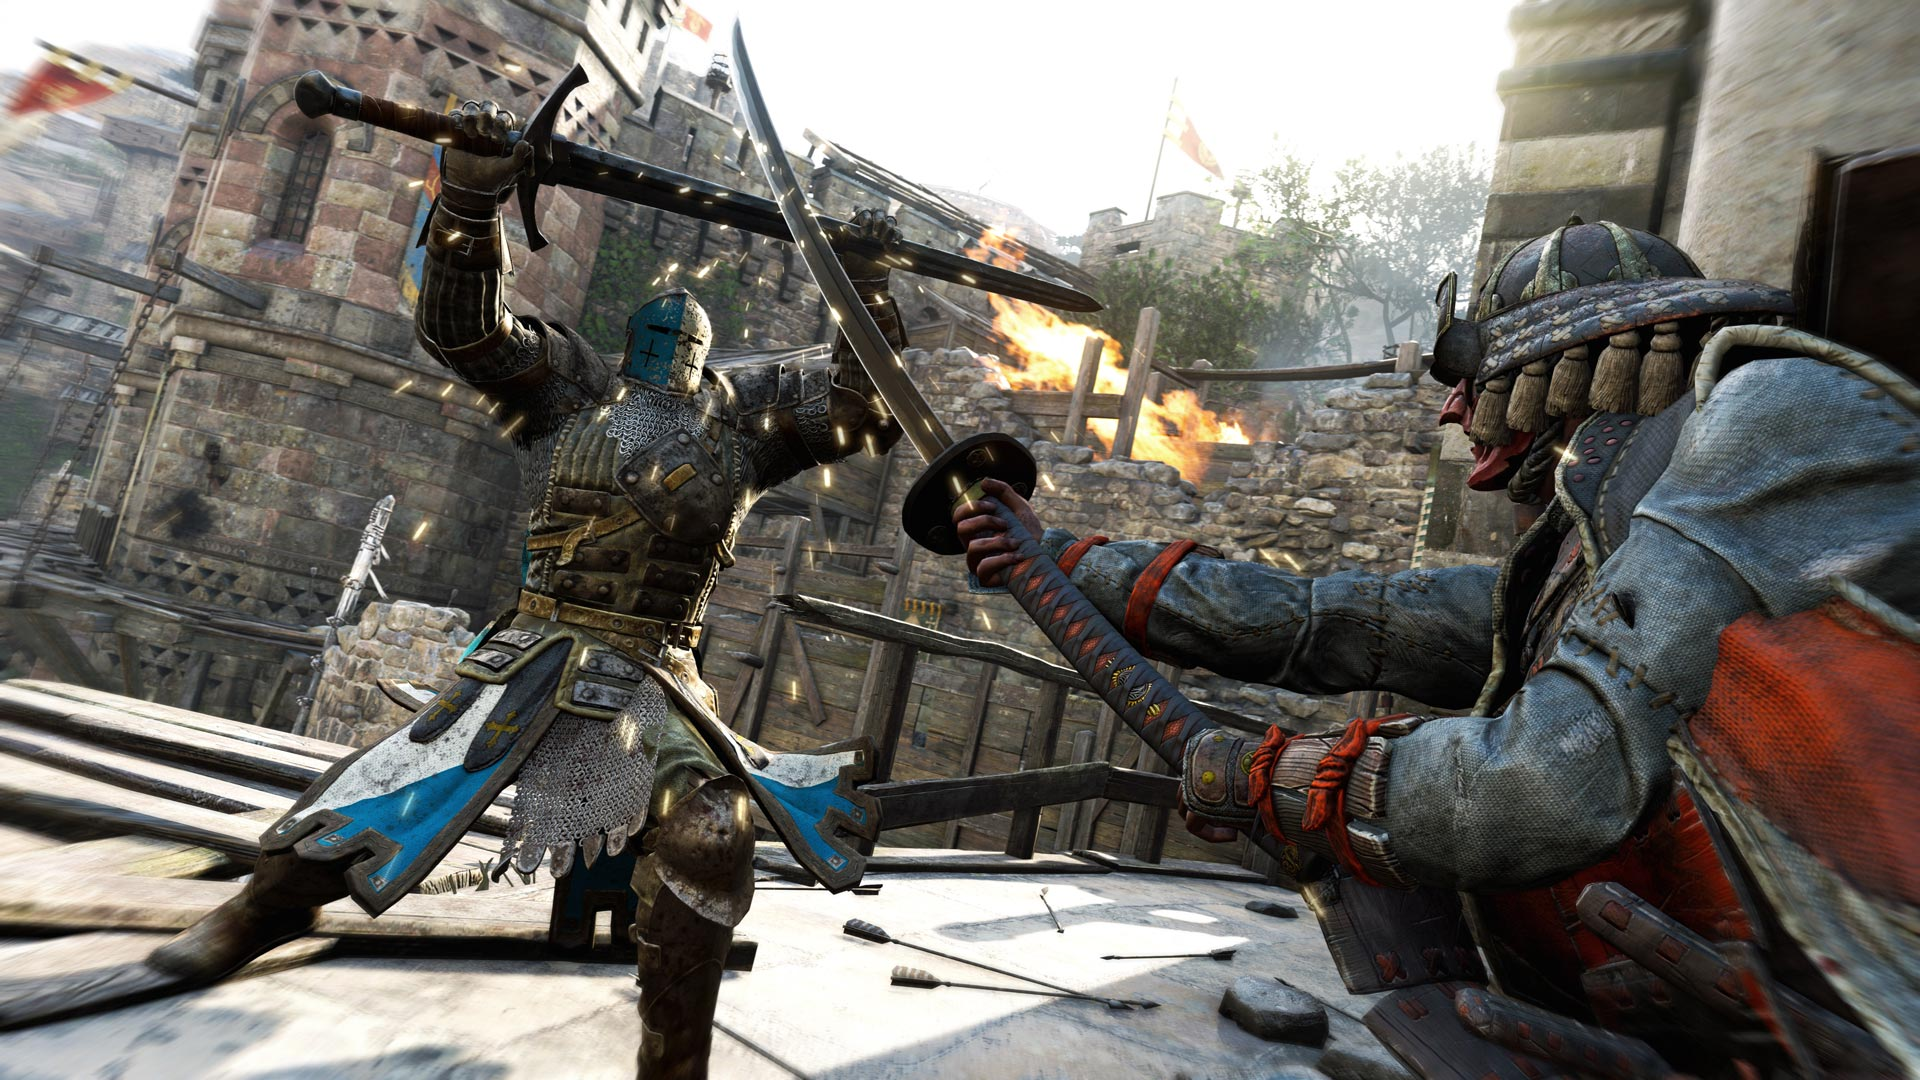 For Honor 6-27-2016 - 5